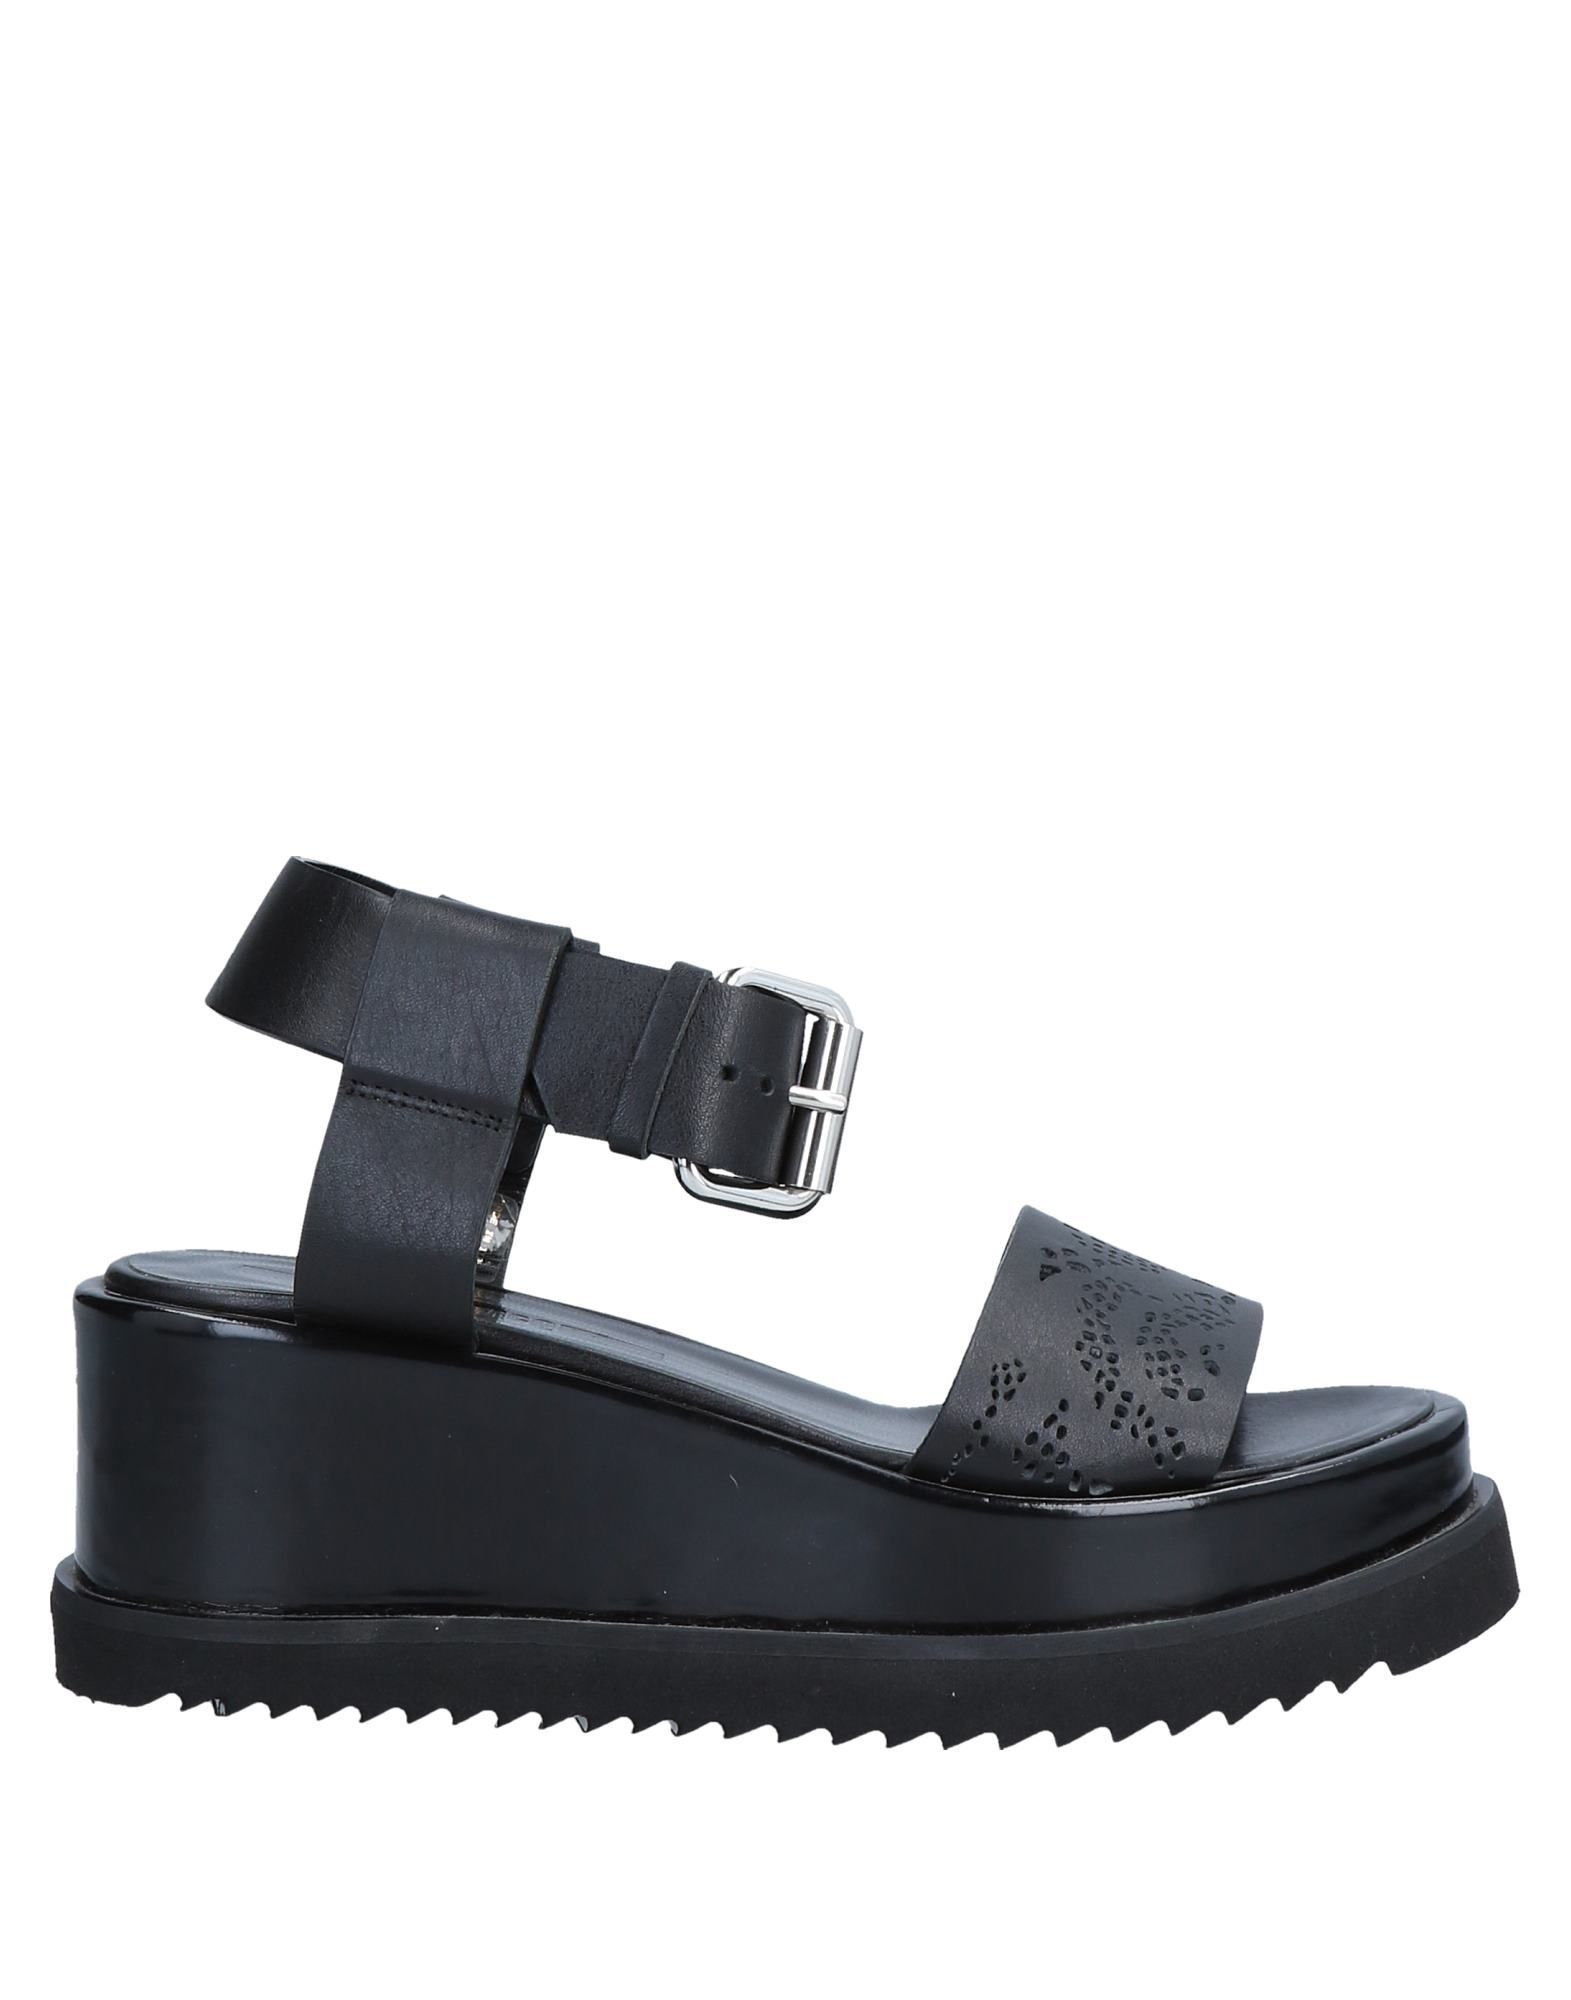 Mcq Alexander McQueen Black Leather Sandals